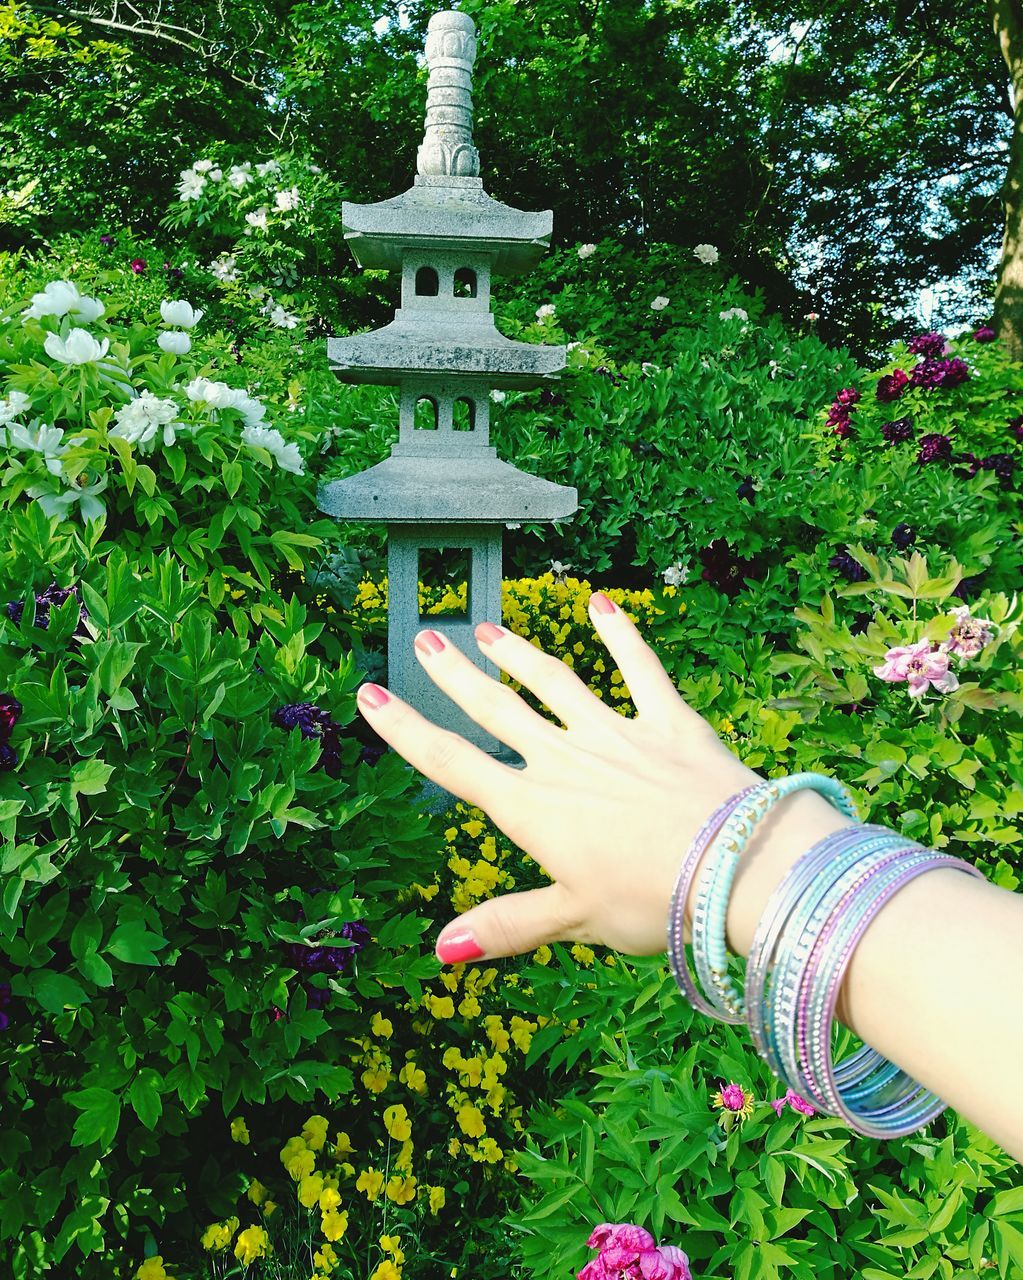 human hand, real people, human body part, one person, green color, outdoors, growth, holding, women, day, plant, beauty in nature, nature, leaf, tree, freshness, close-up, people